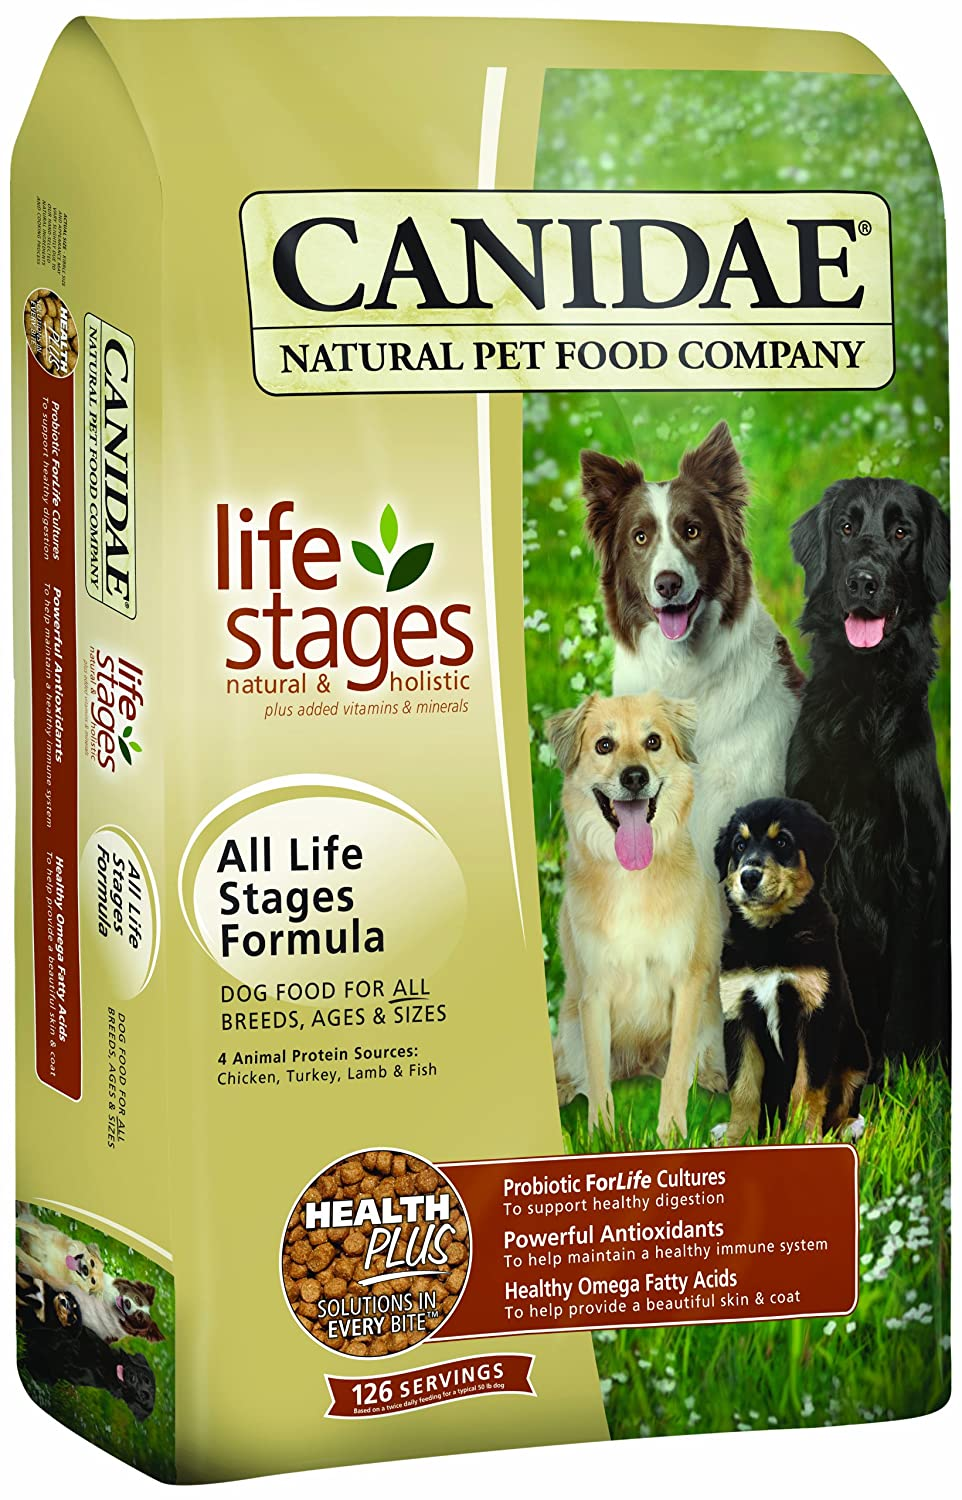 How Do You Make Natural Dog Food